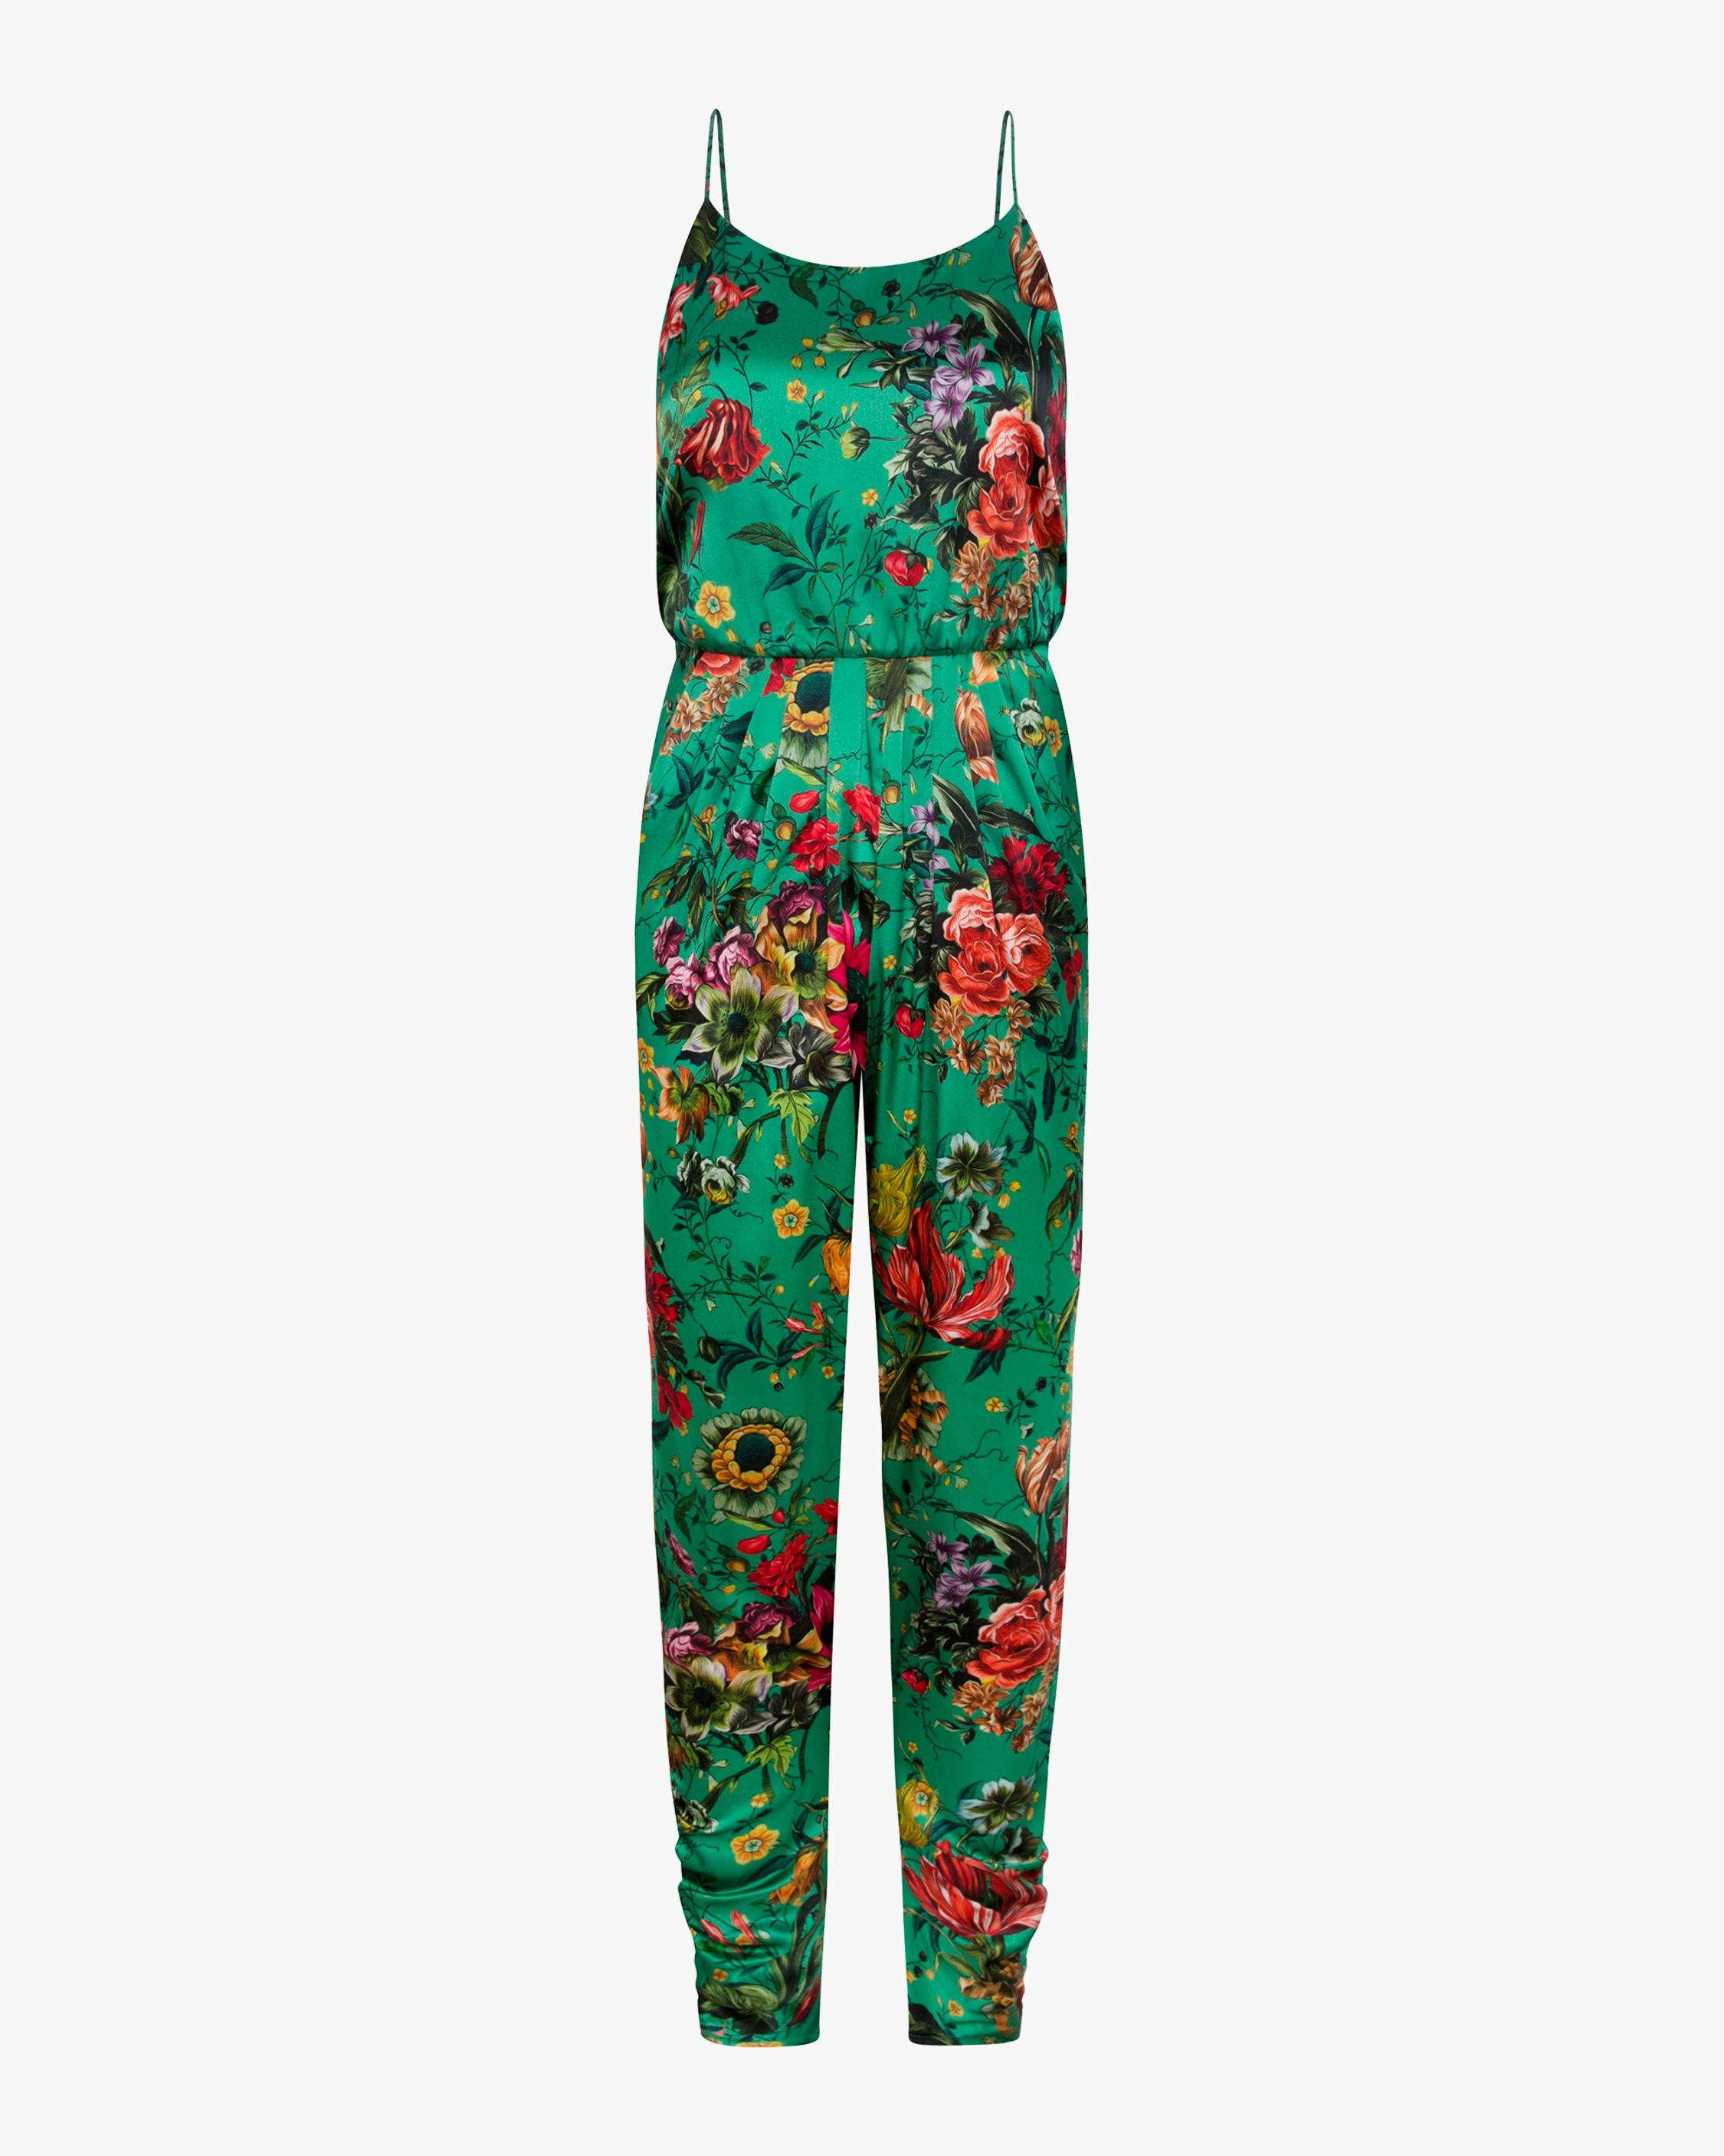 35988ae30d8 Lyst - Adriana Iglesias Donna Jumpsuit in Green